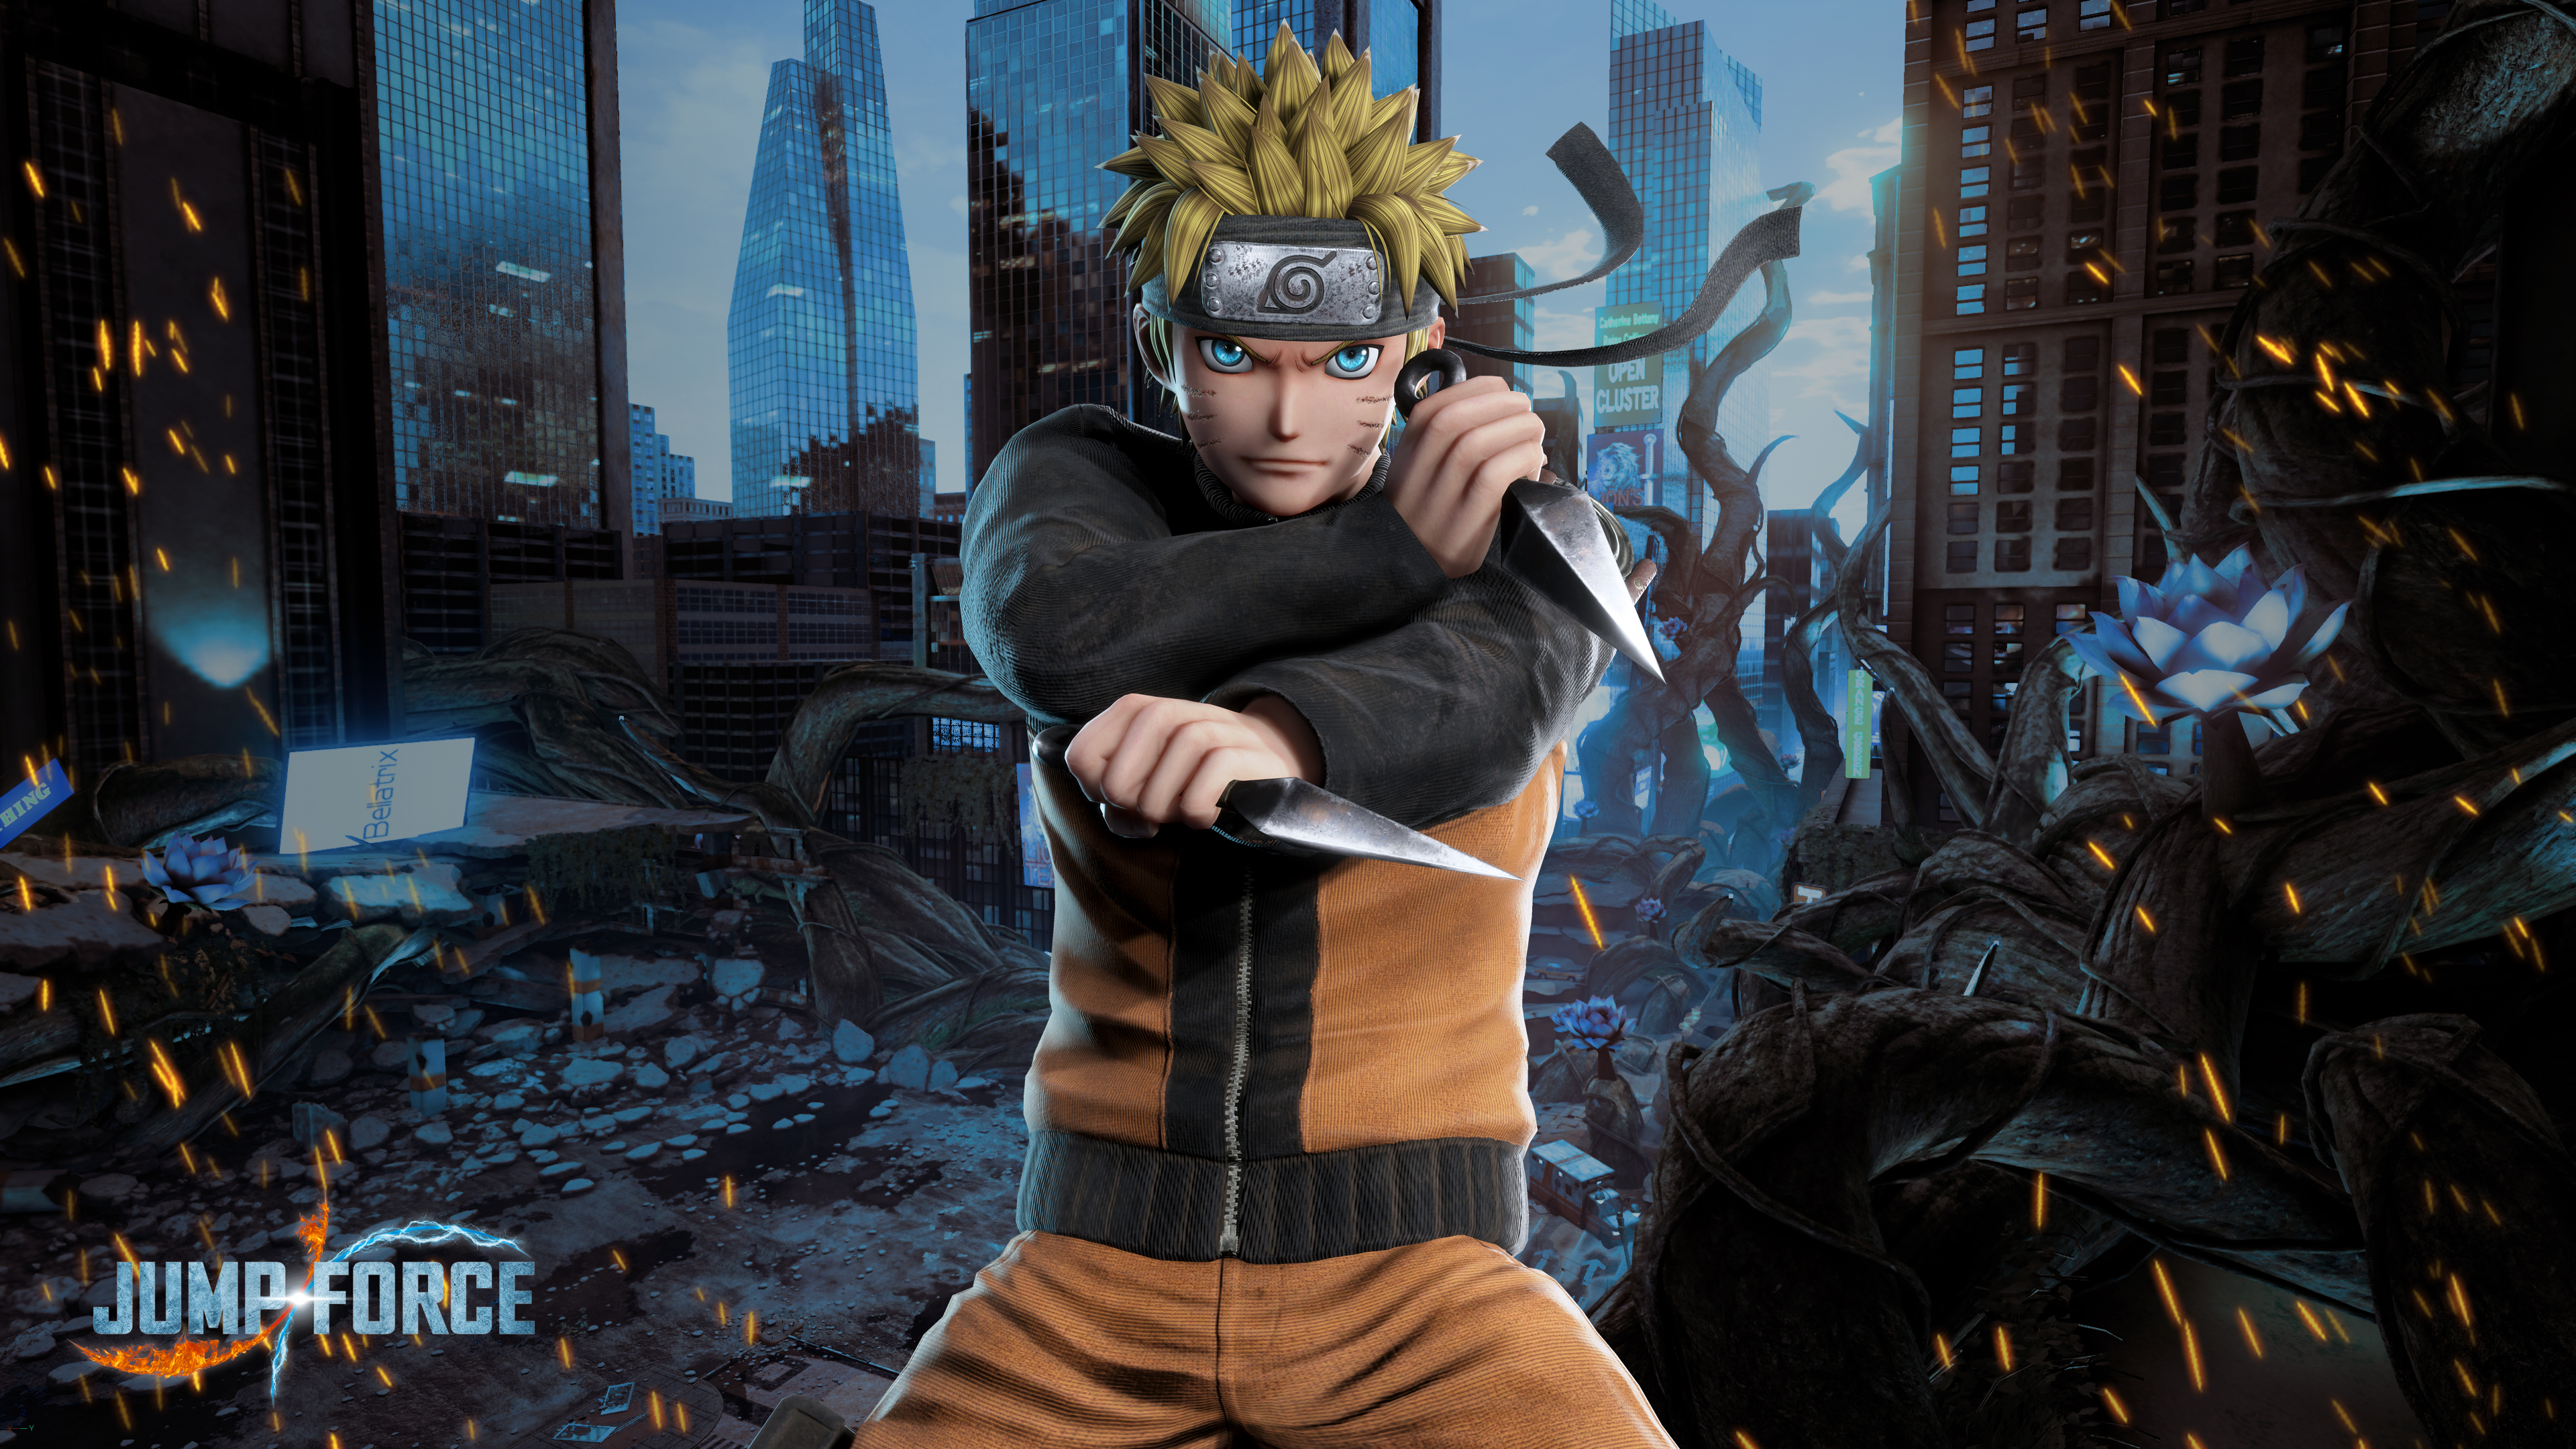 Naruto Iphone 7 Wallpaper Jump Force Naruto Wallpapers Cat With Monocle